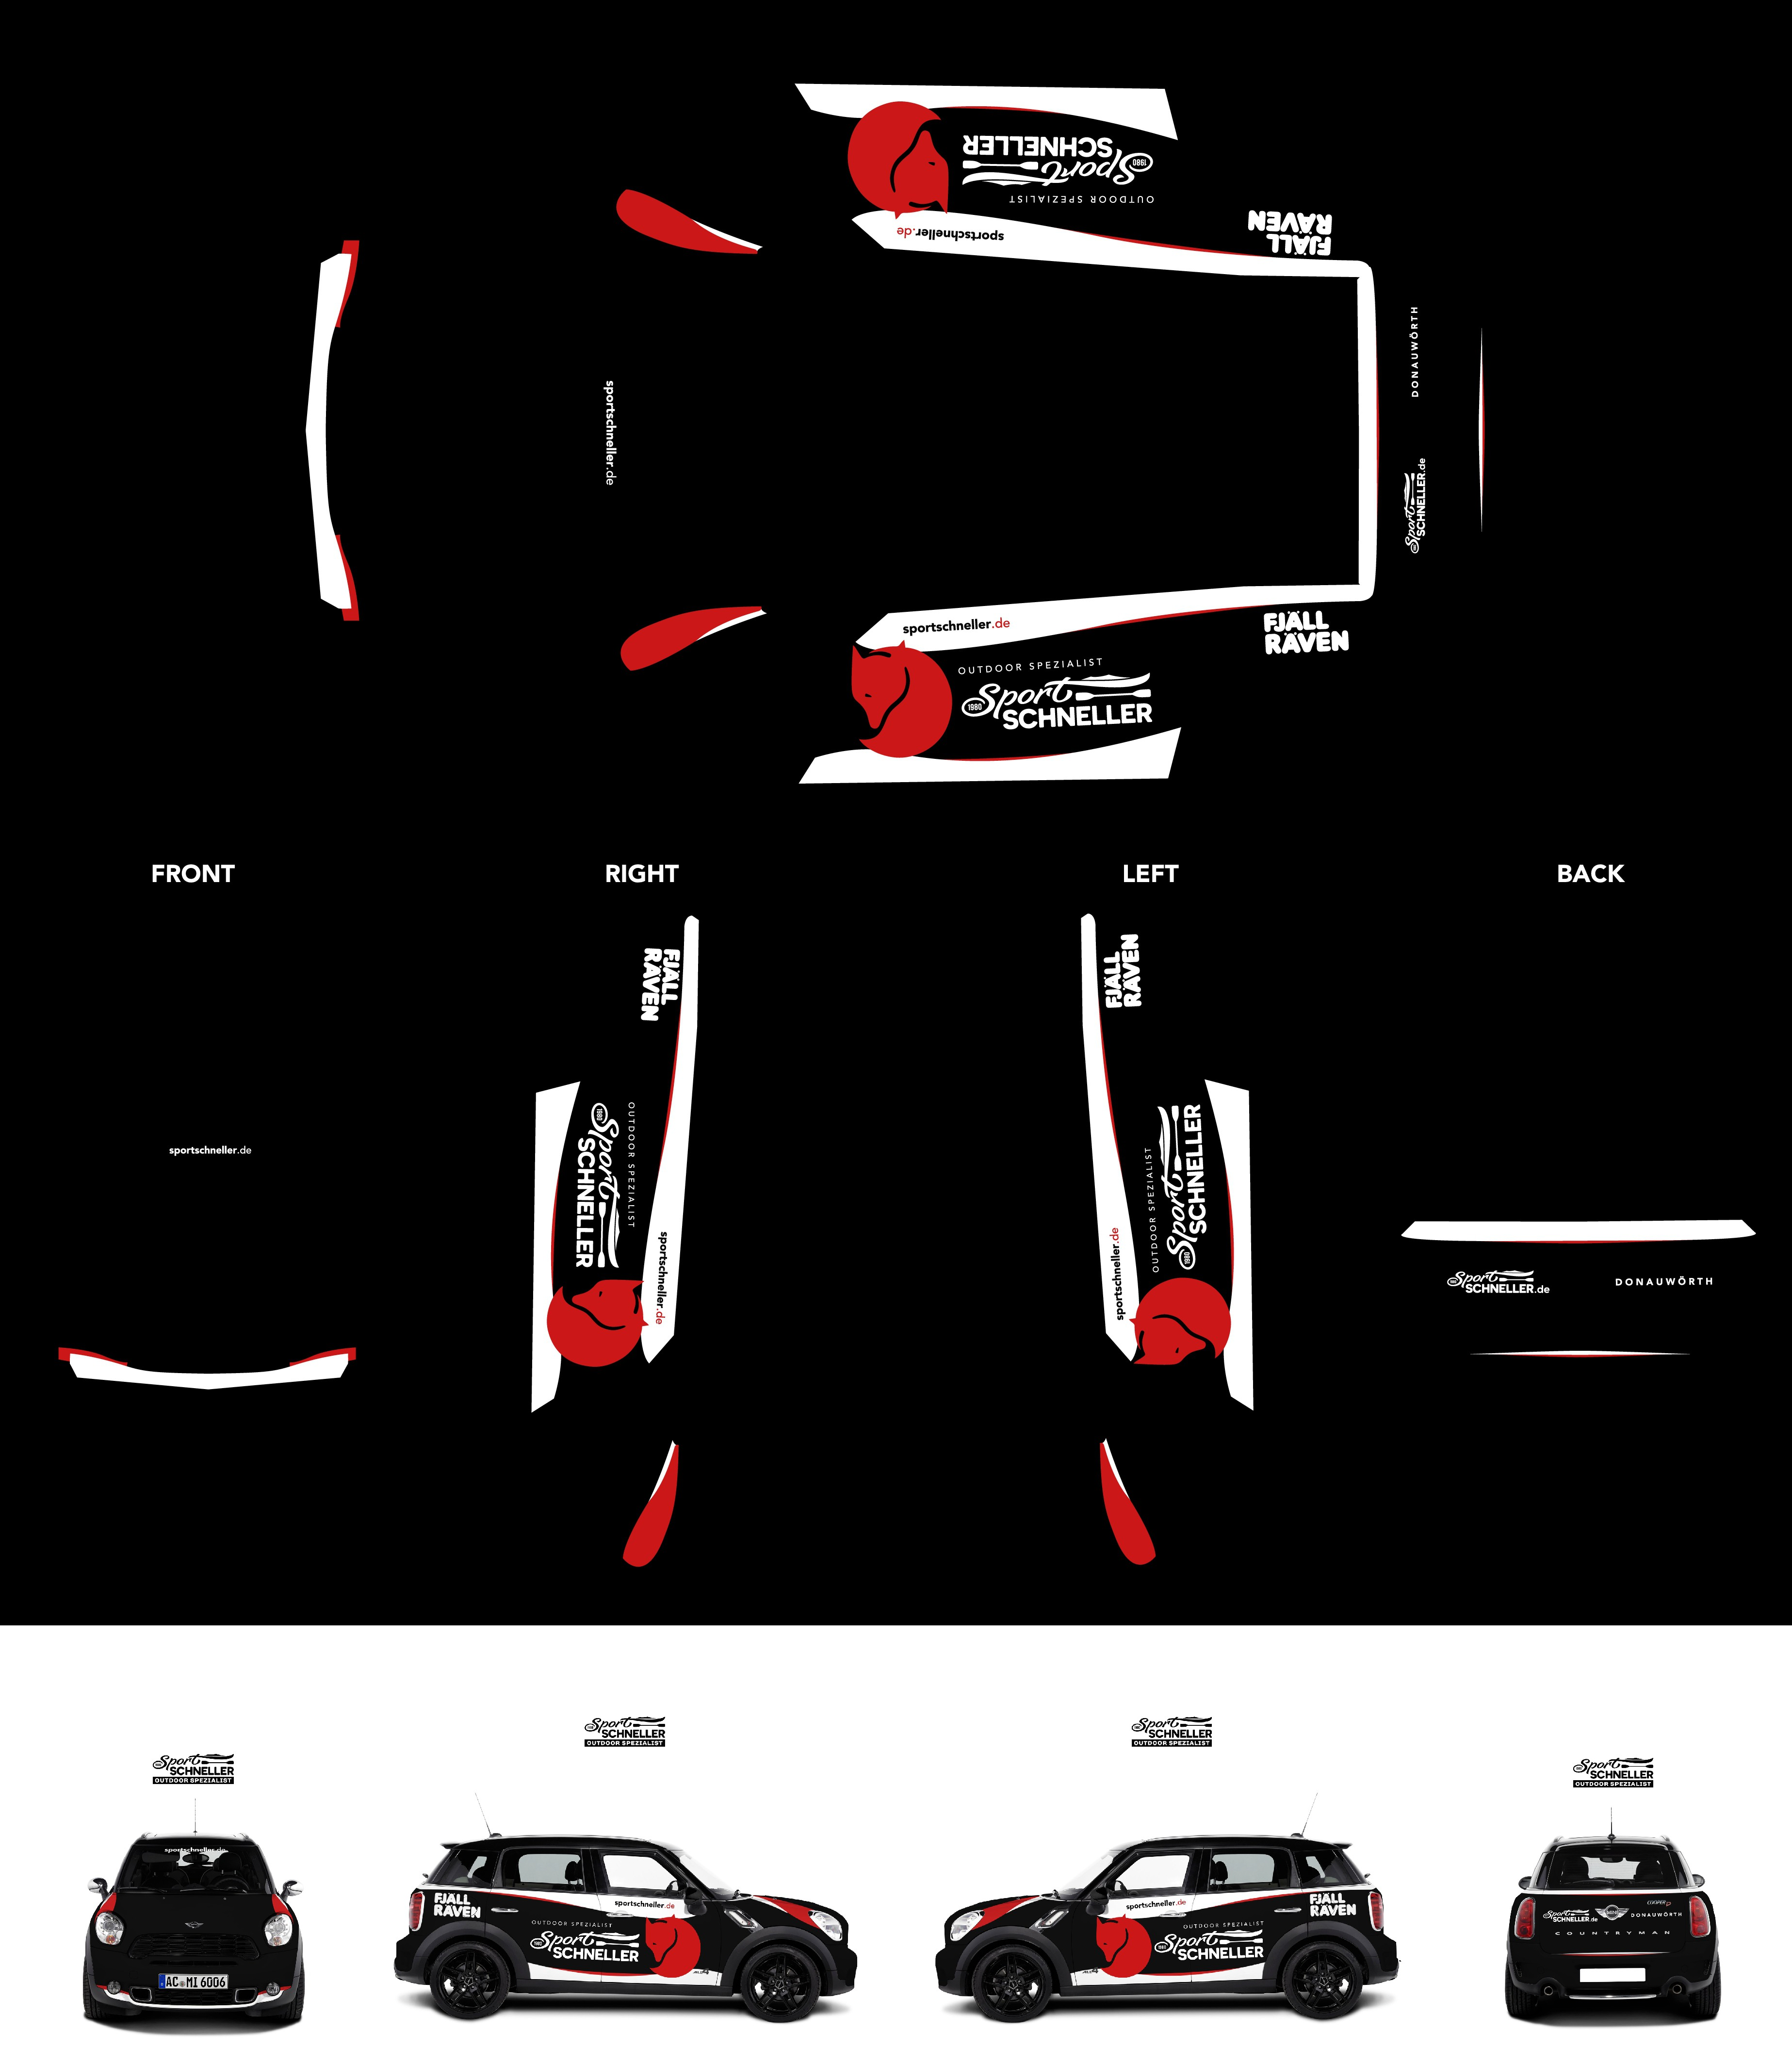 Mini Countryman design for our high end Outdoor & Fashion Store